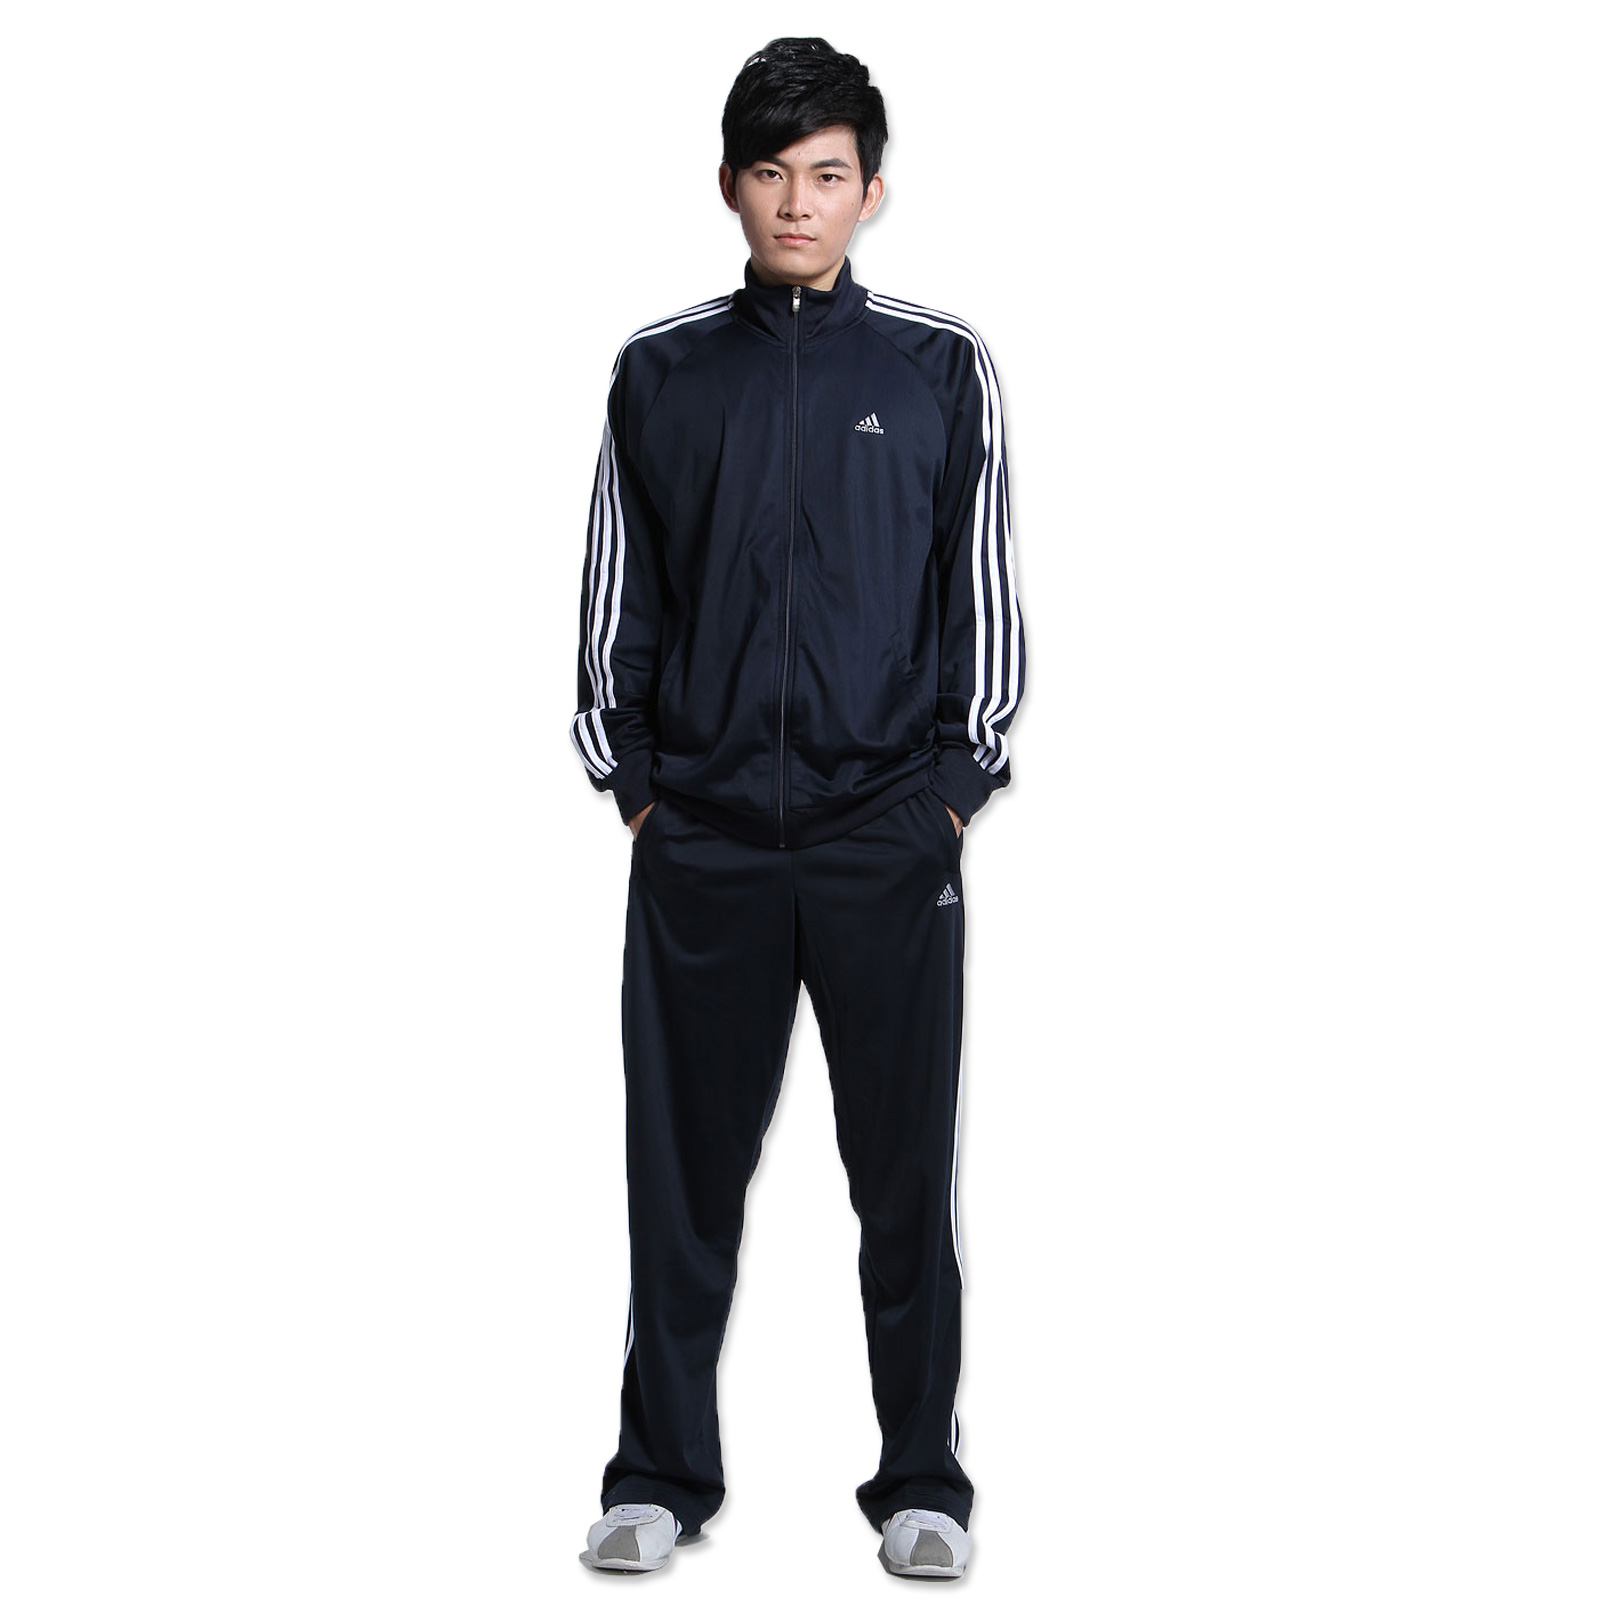 ADIDAS 3S ESSENTIAL Logo Track Track Suit Tracksuit Navy